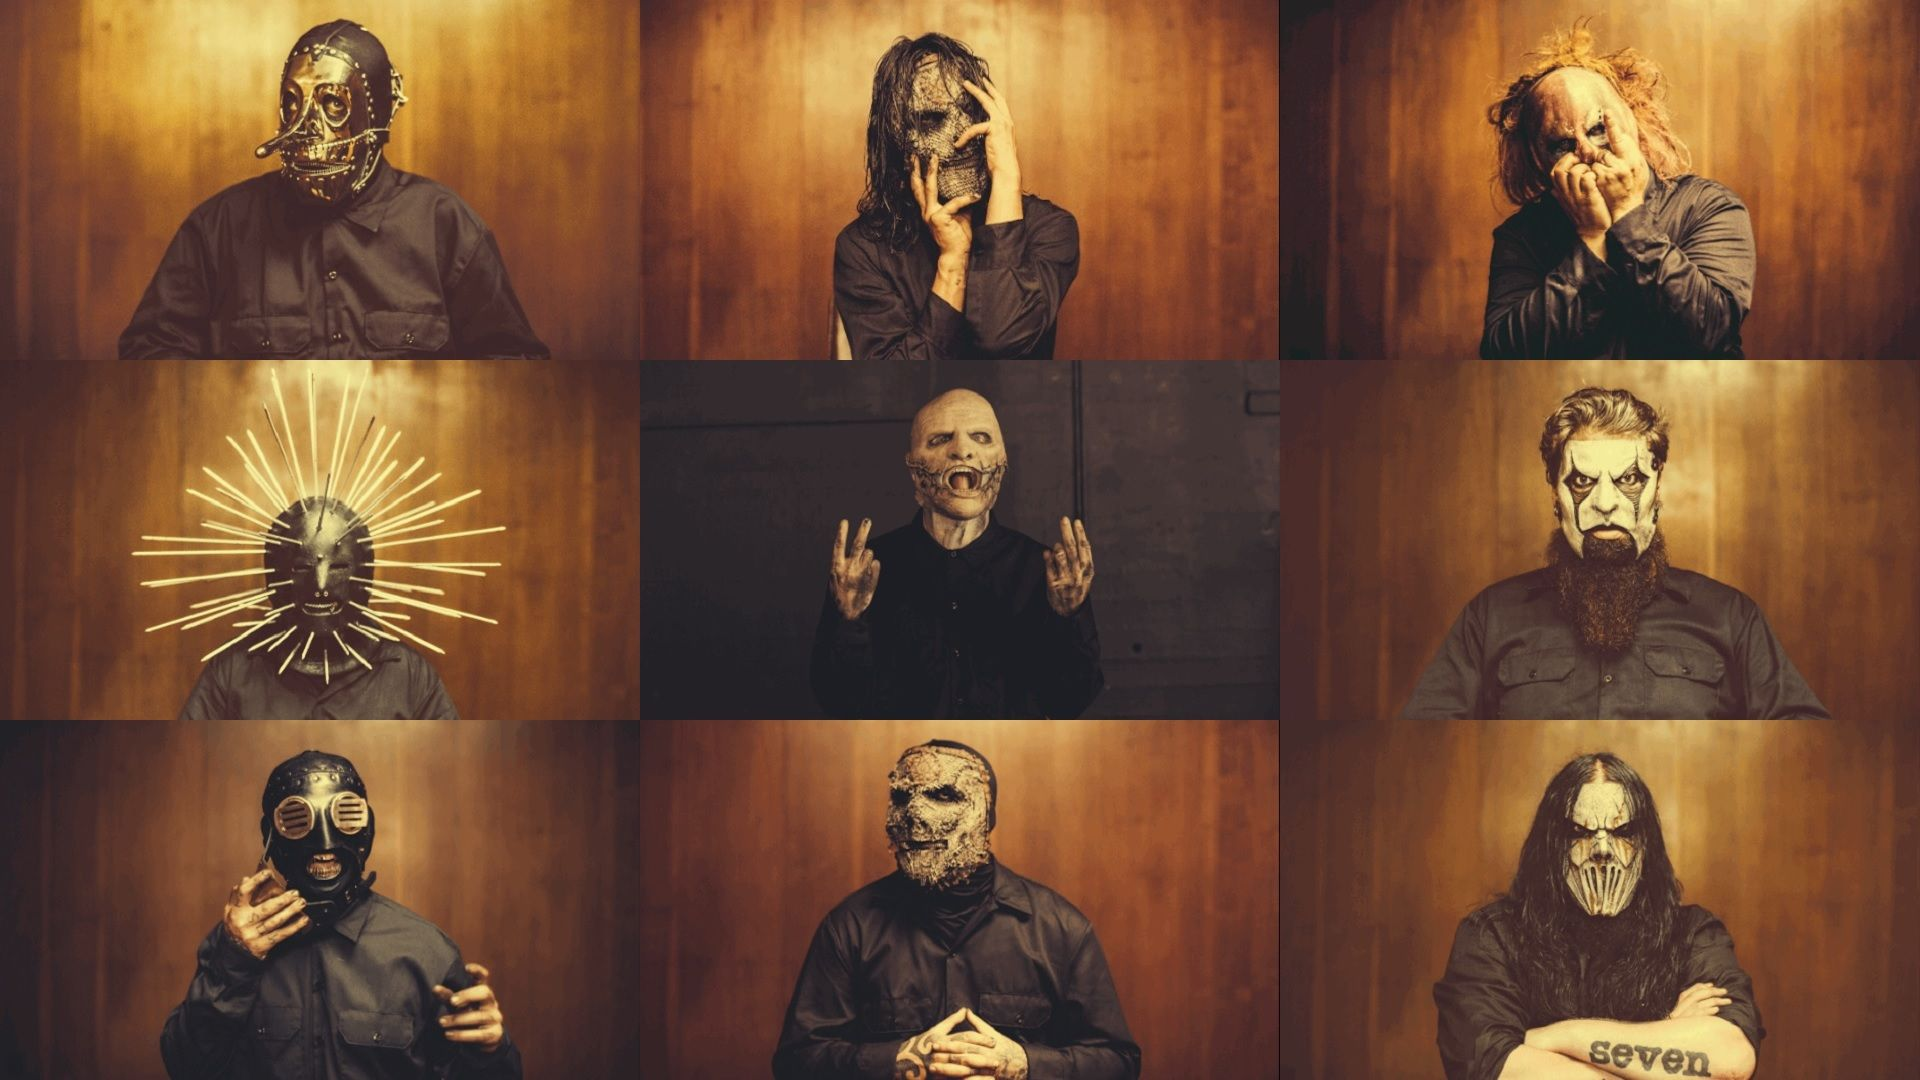 Slipknot Wallpaper Picture Image 1920x1080